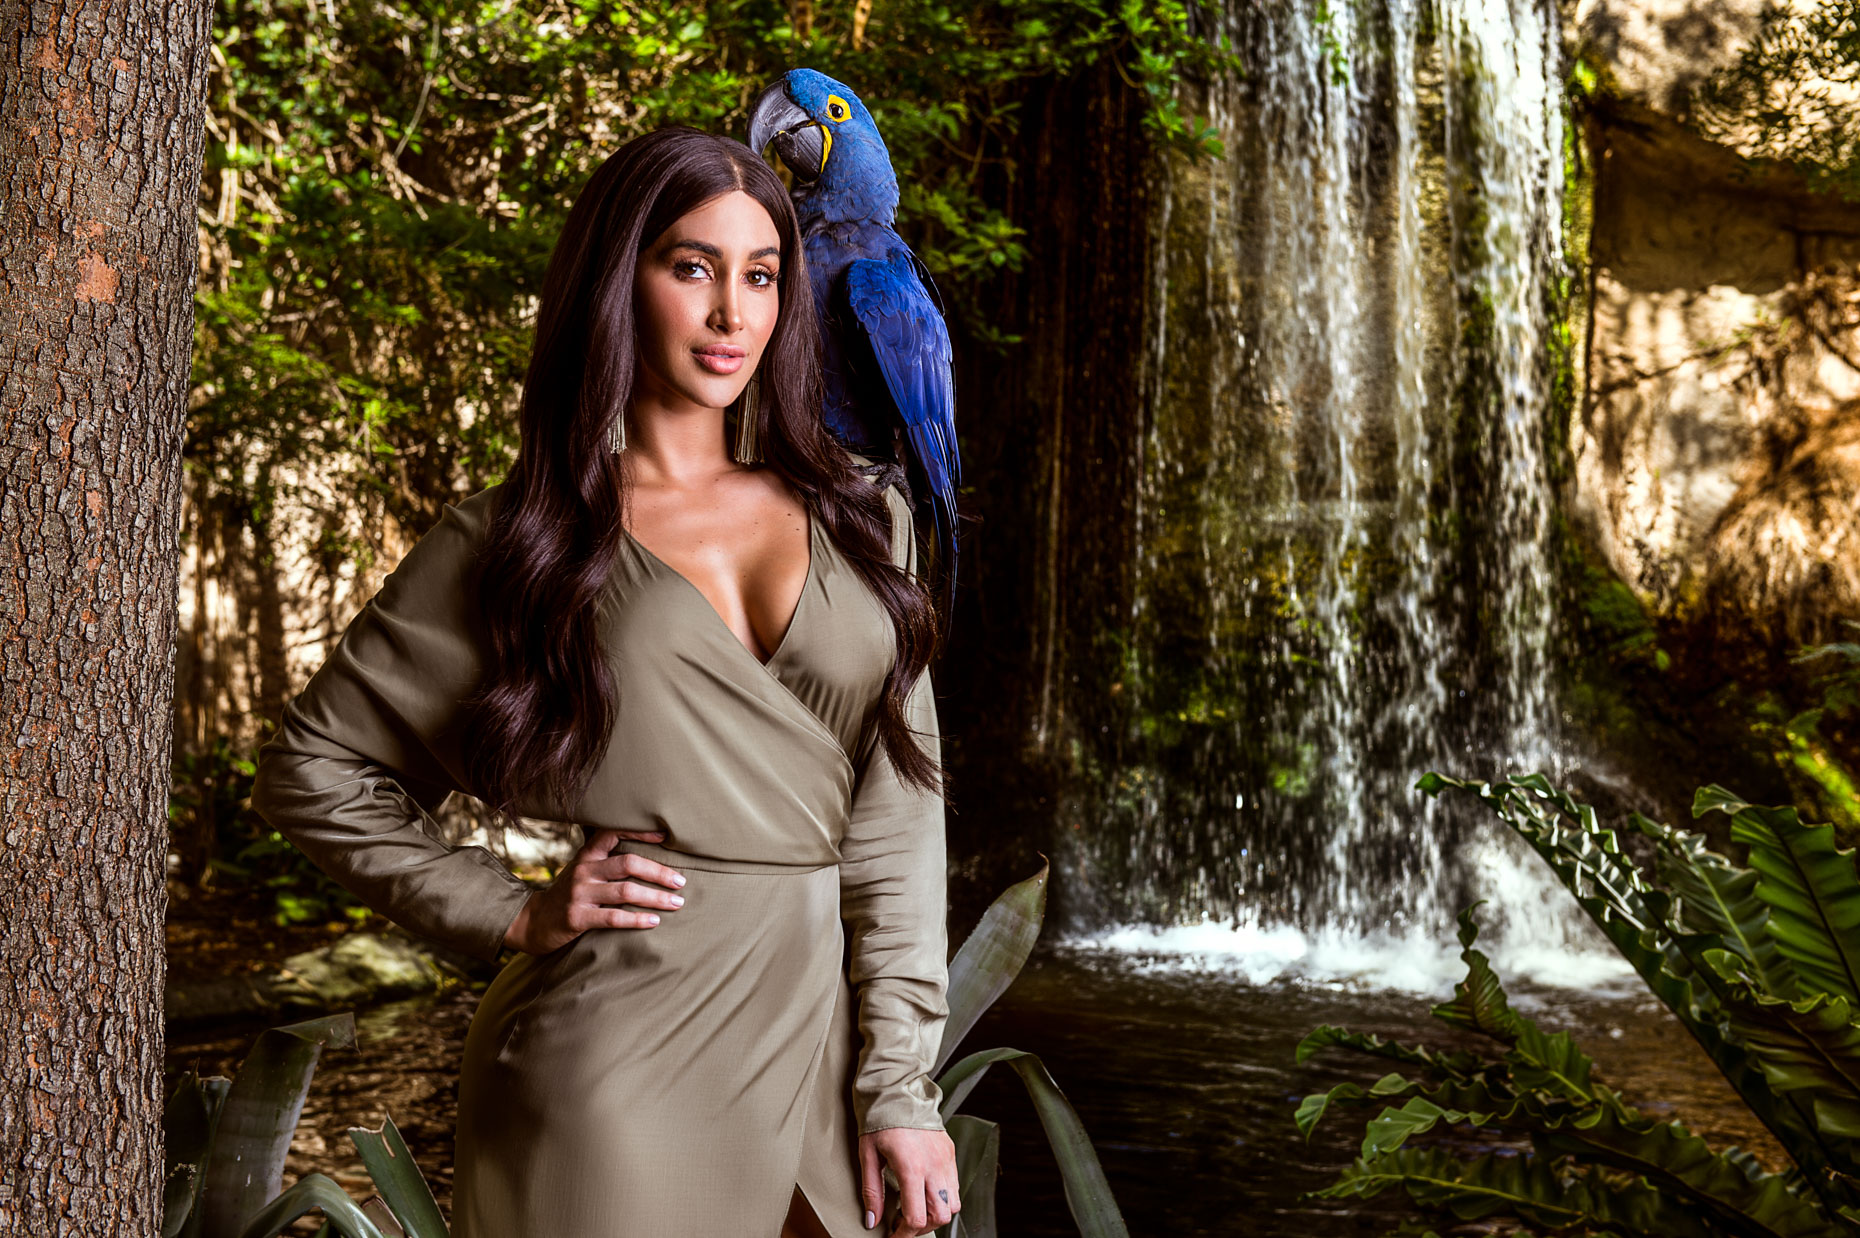 ClaudiaSampedro-587-Edit